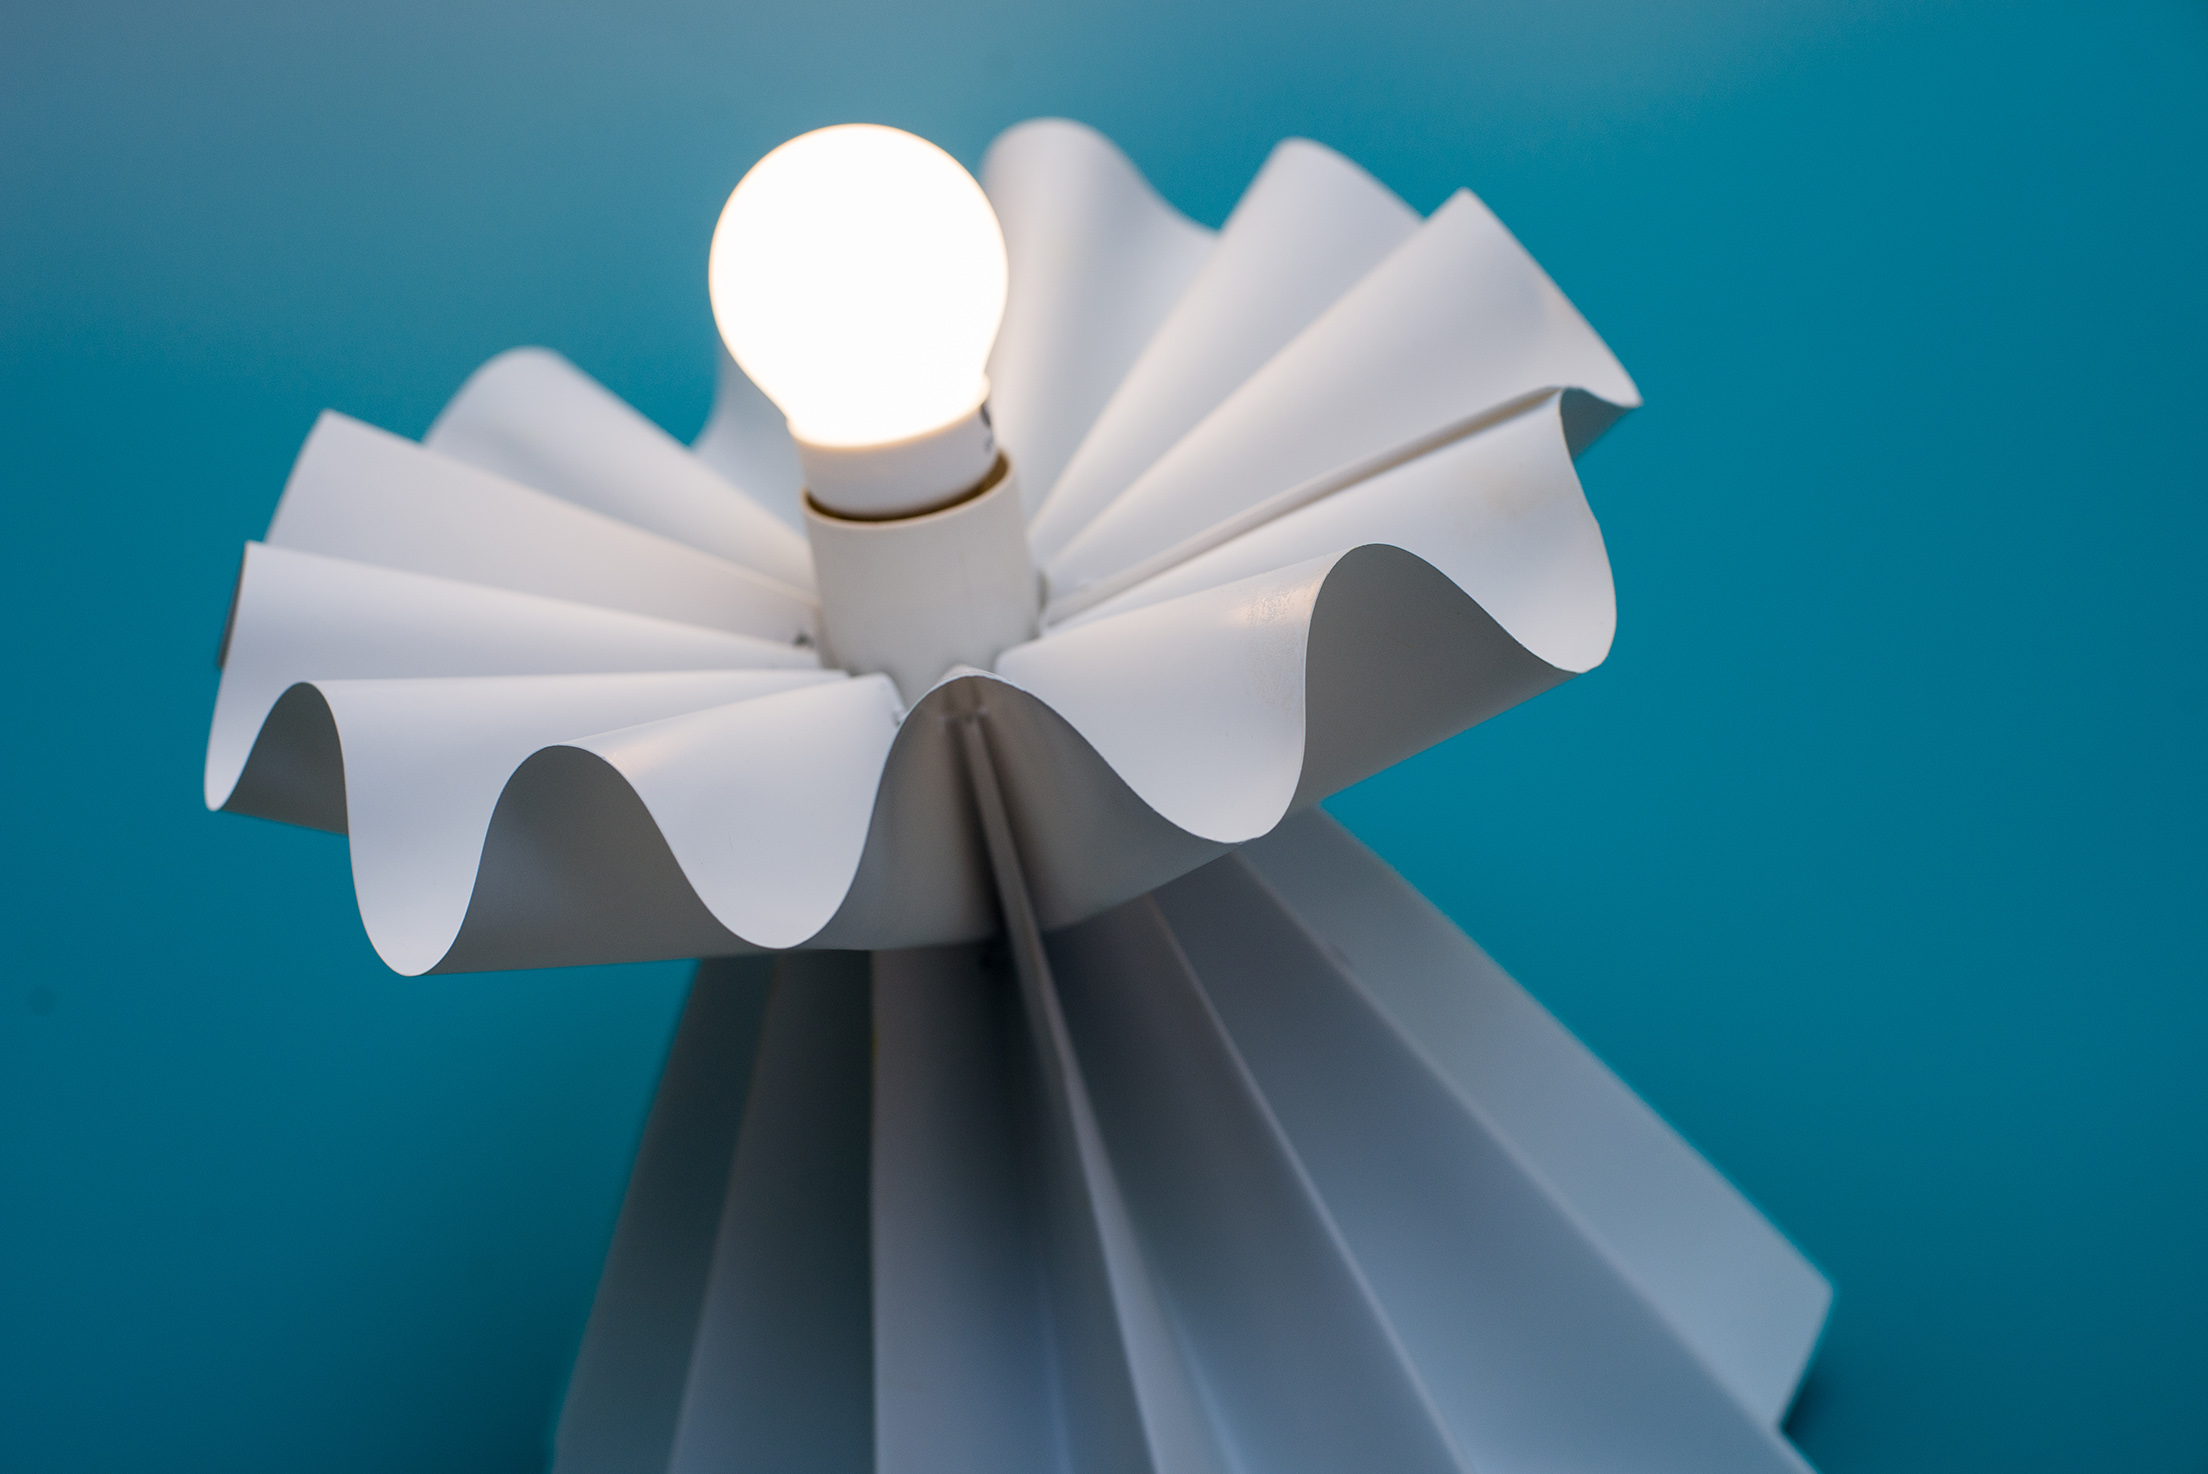 The Hana Wave lamp is inspired by the Japanese lily because of the curvature at the edge of its petals.